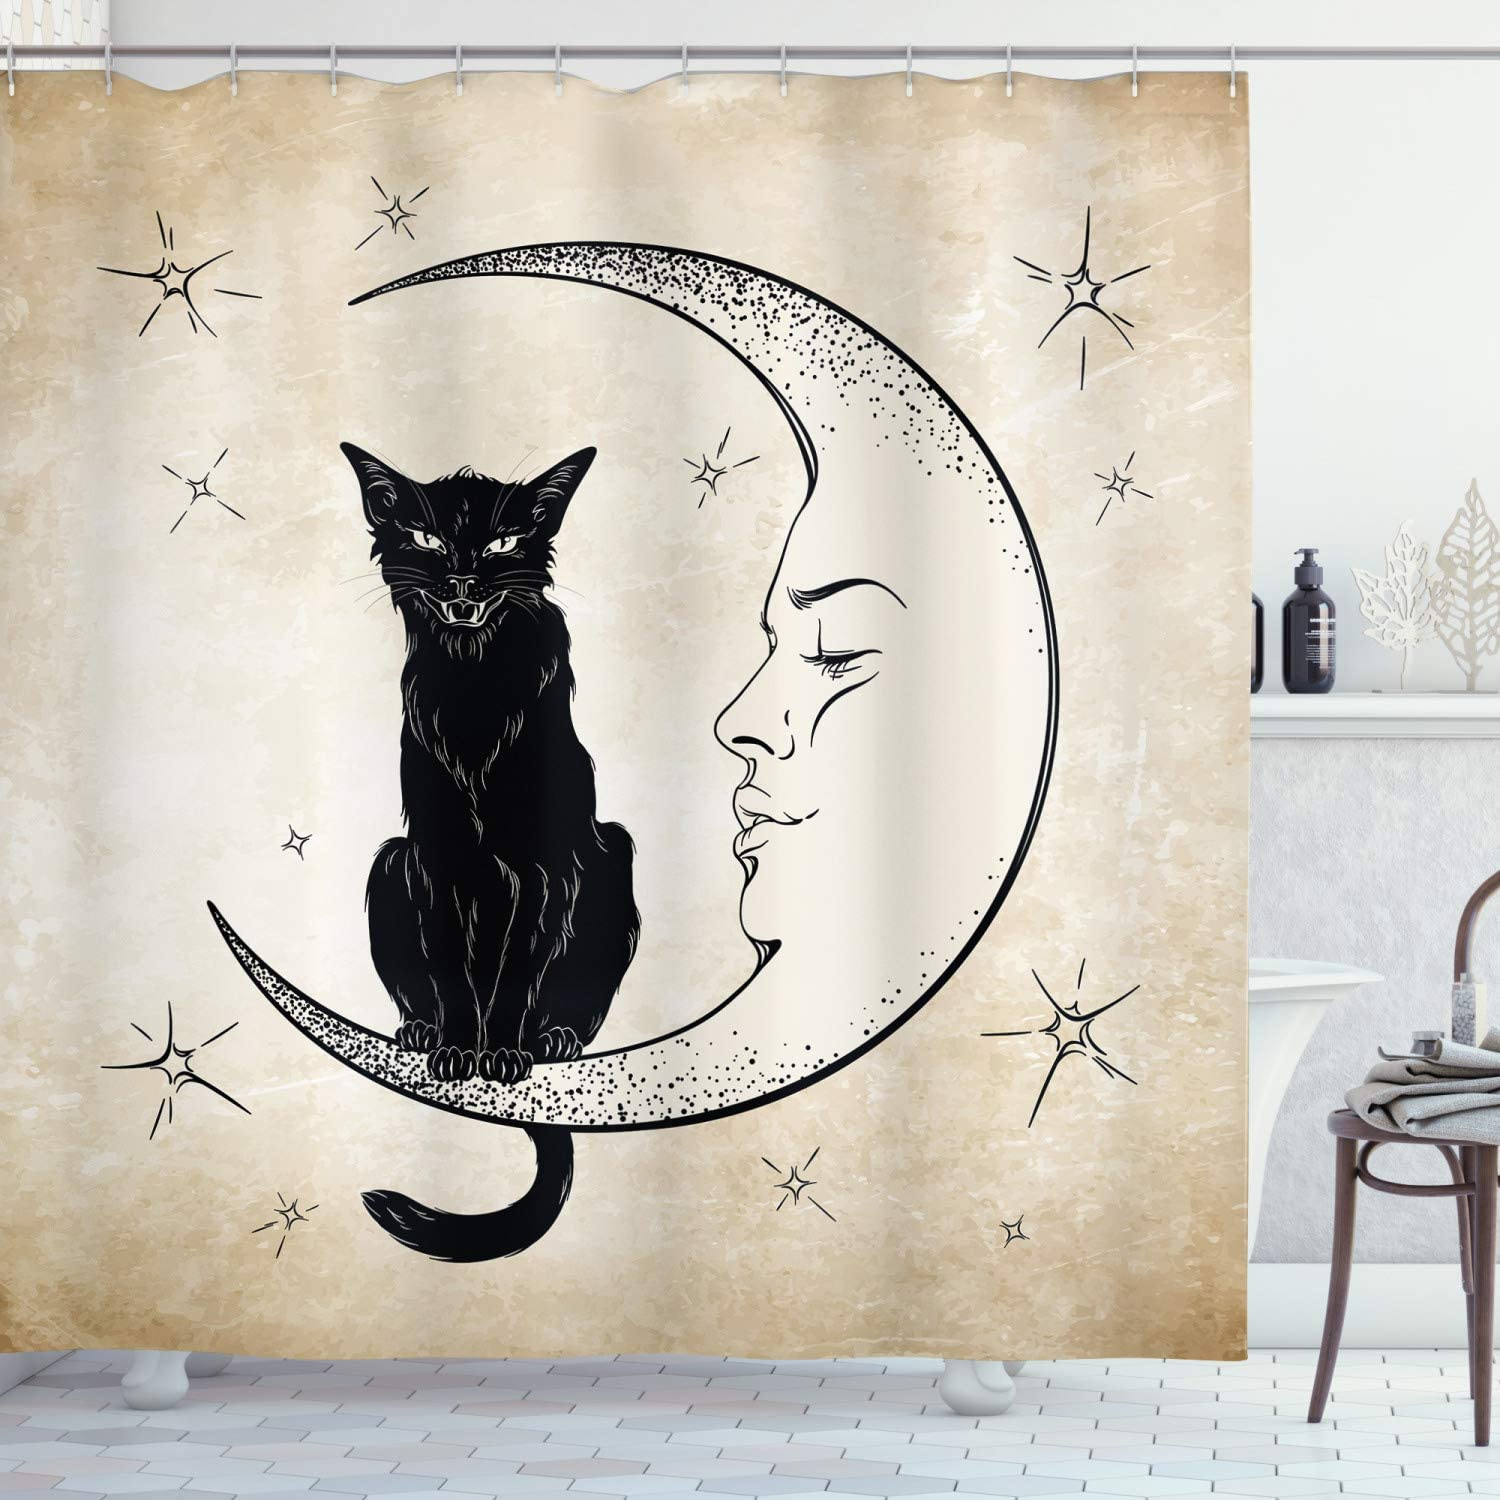 Ambesonne Moon Shower Curtain Black Cat Sitting On White Crescent Moon Contrasting Facial Expressions Feline Cloth Fabric Bathroom Decor Set With Hooks 75 Long Brown Black Home Kitchen